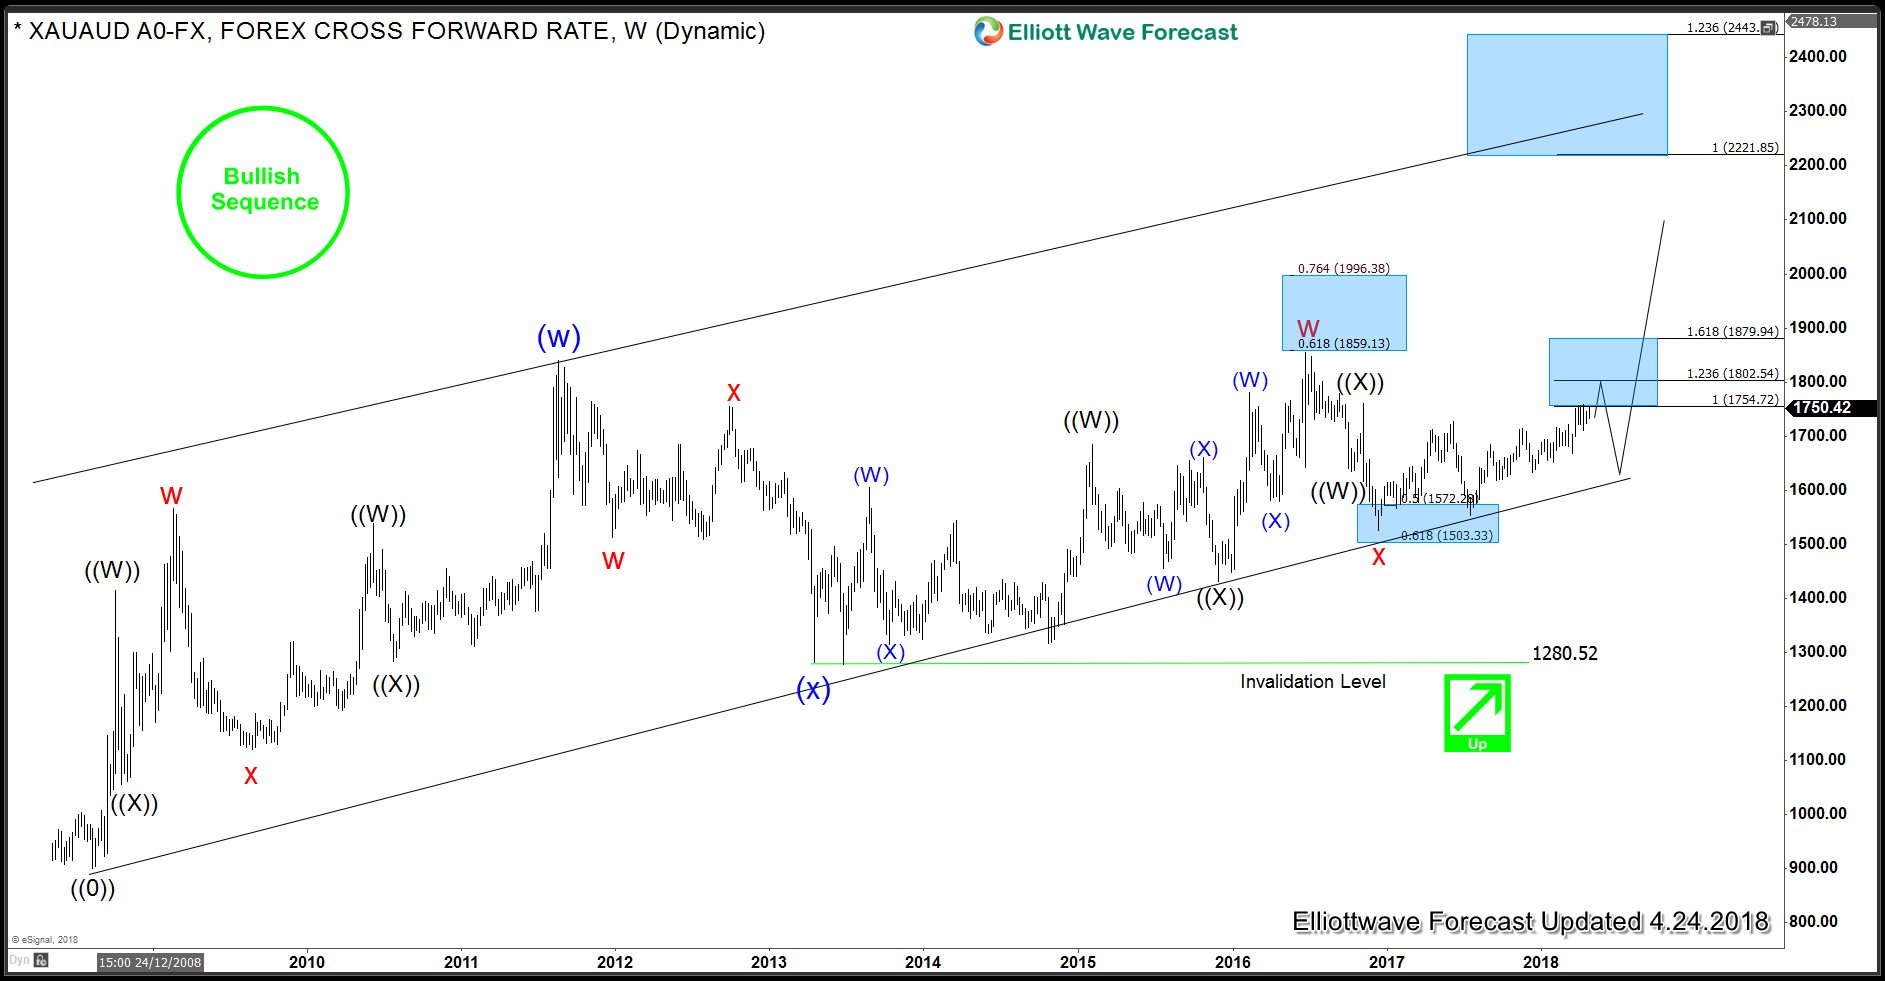 Gold versus Australian Dollar - Weekly Elliott Wave View